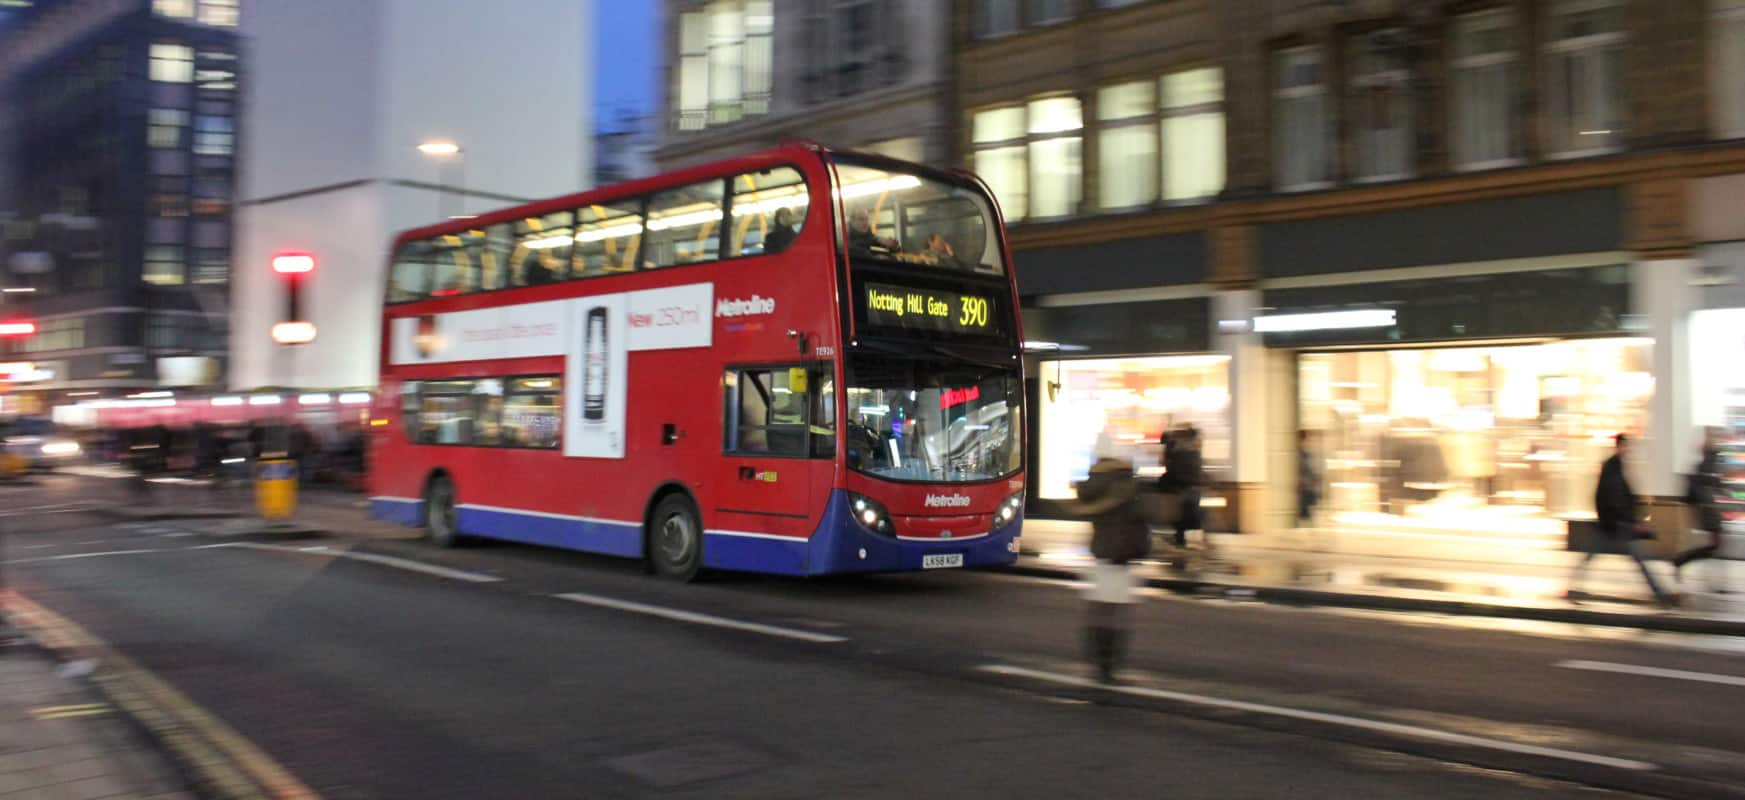 The night bus of London passing the street